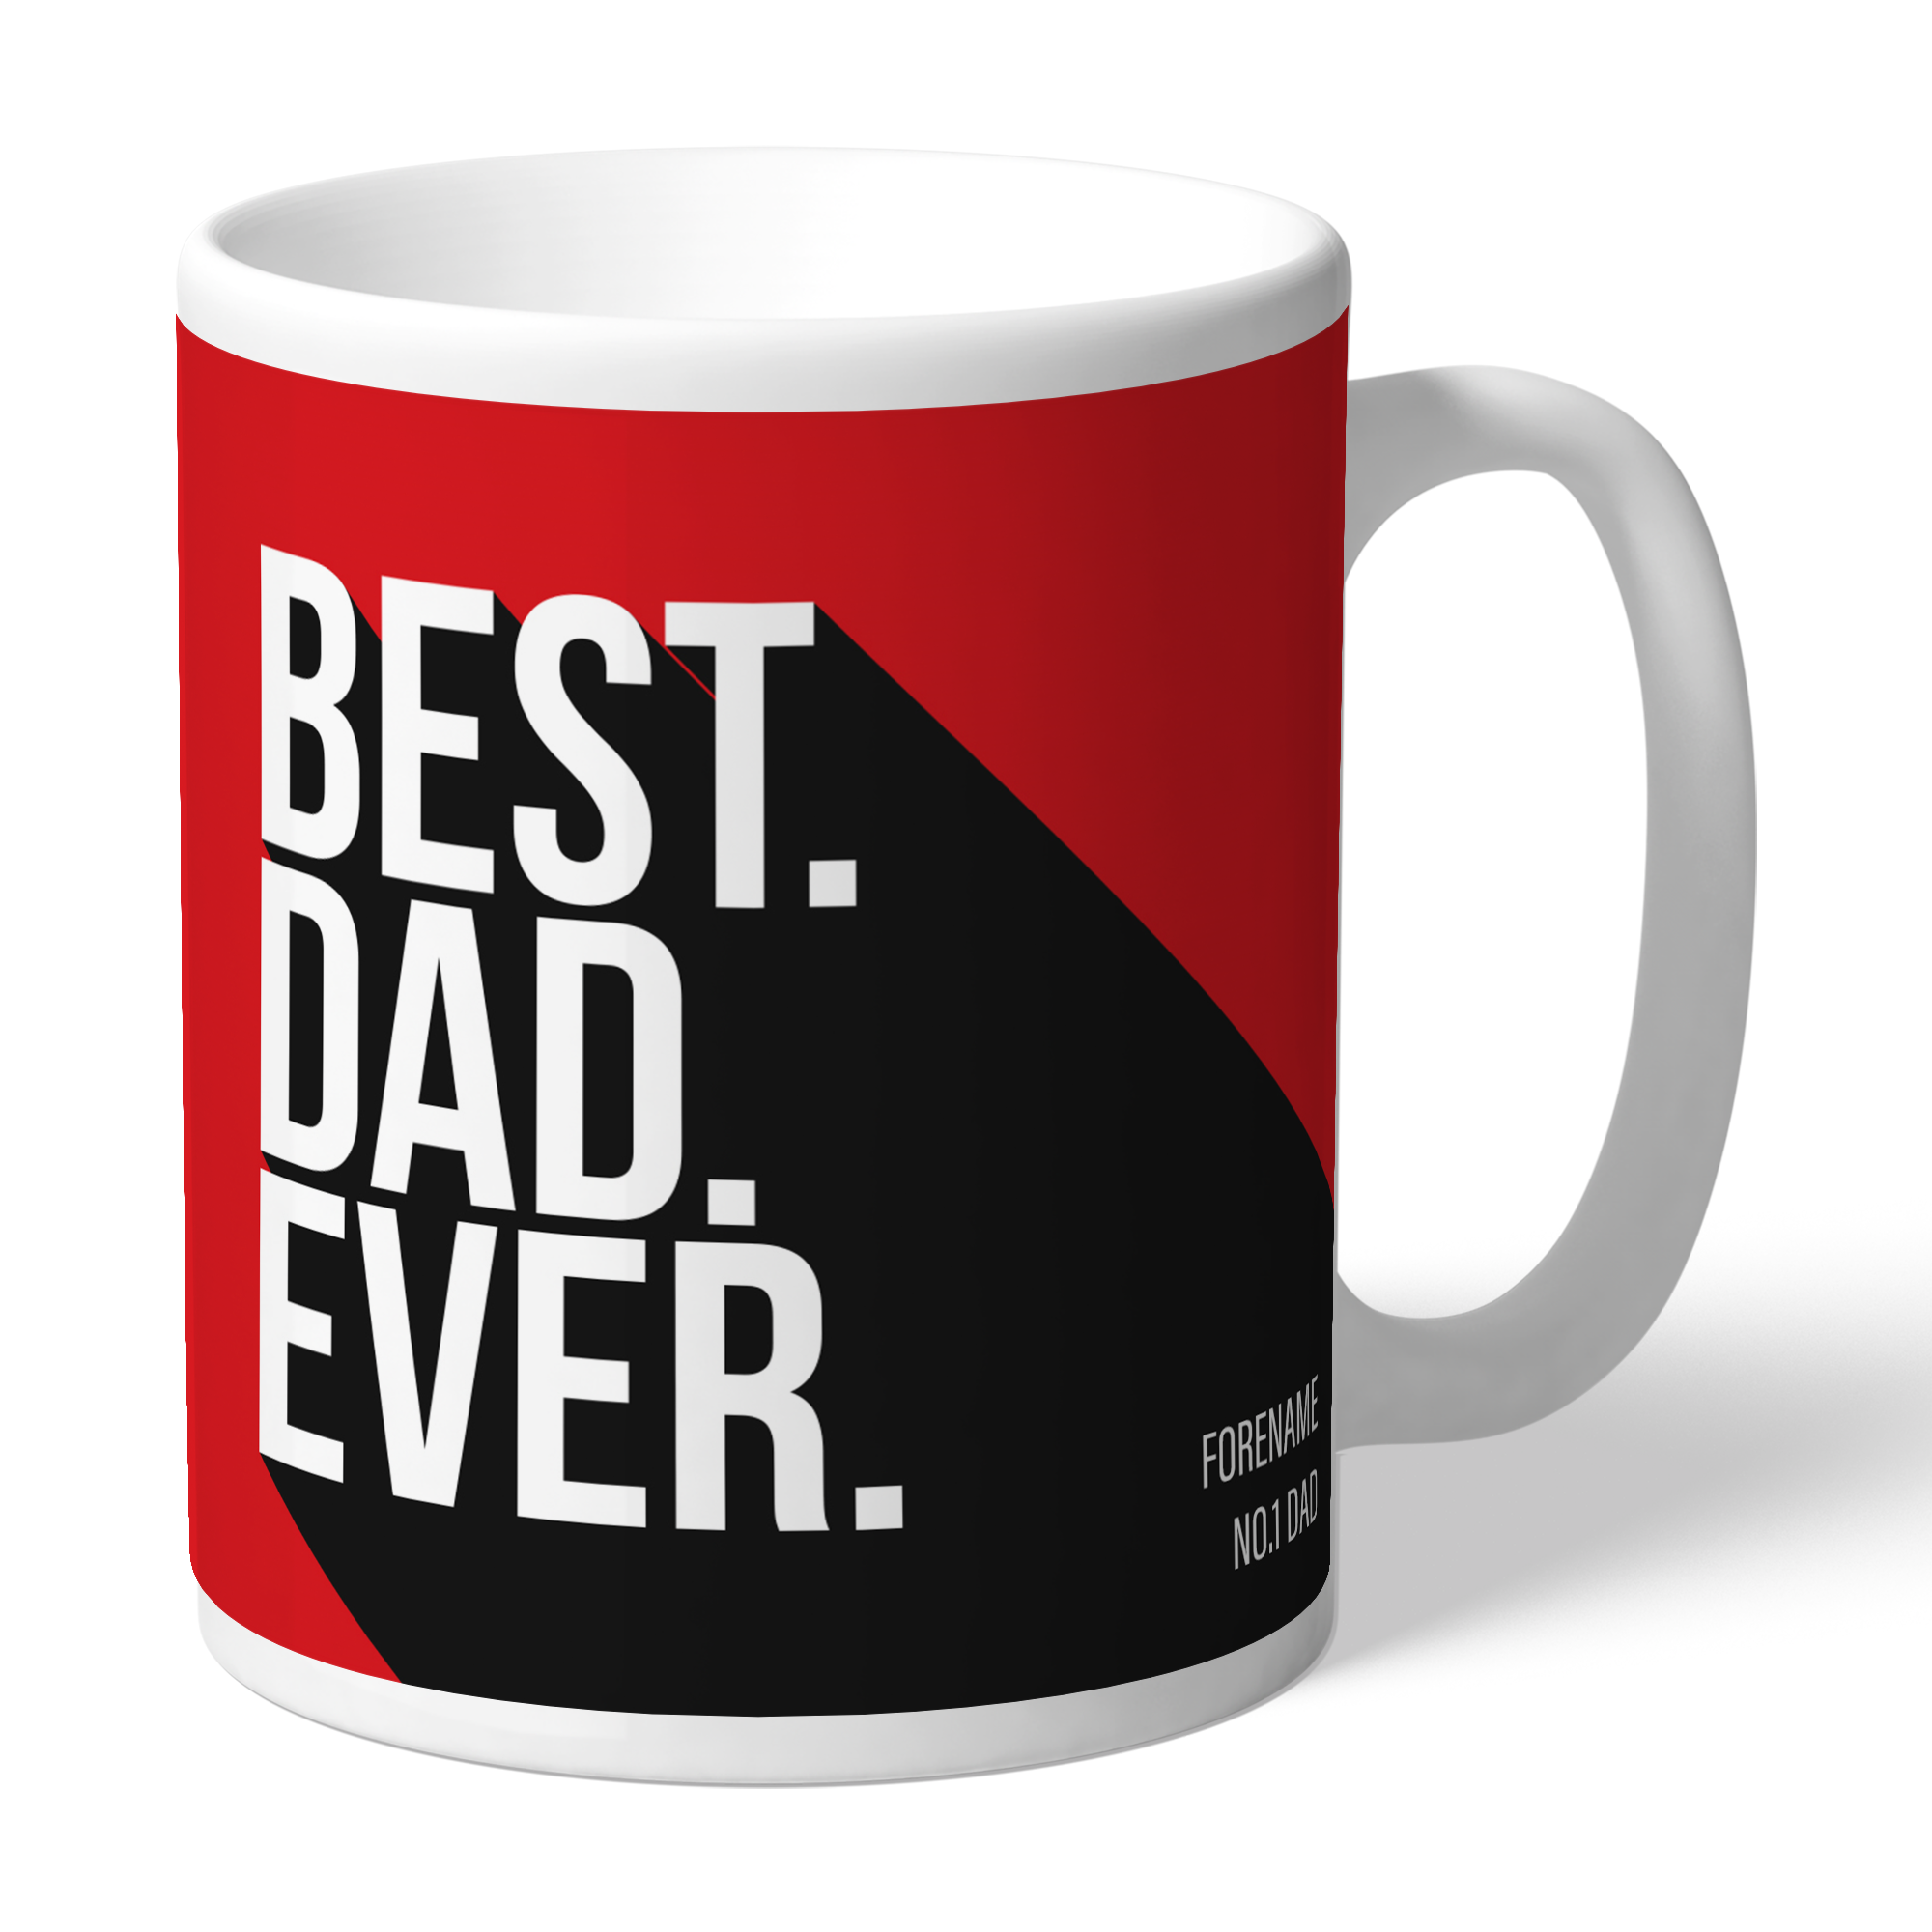 Southampton FC Best Dad Ever Mug